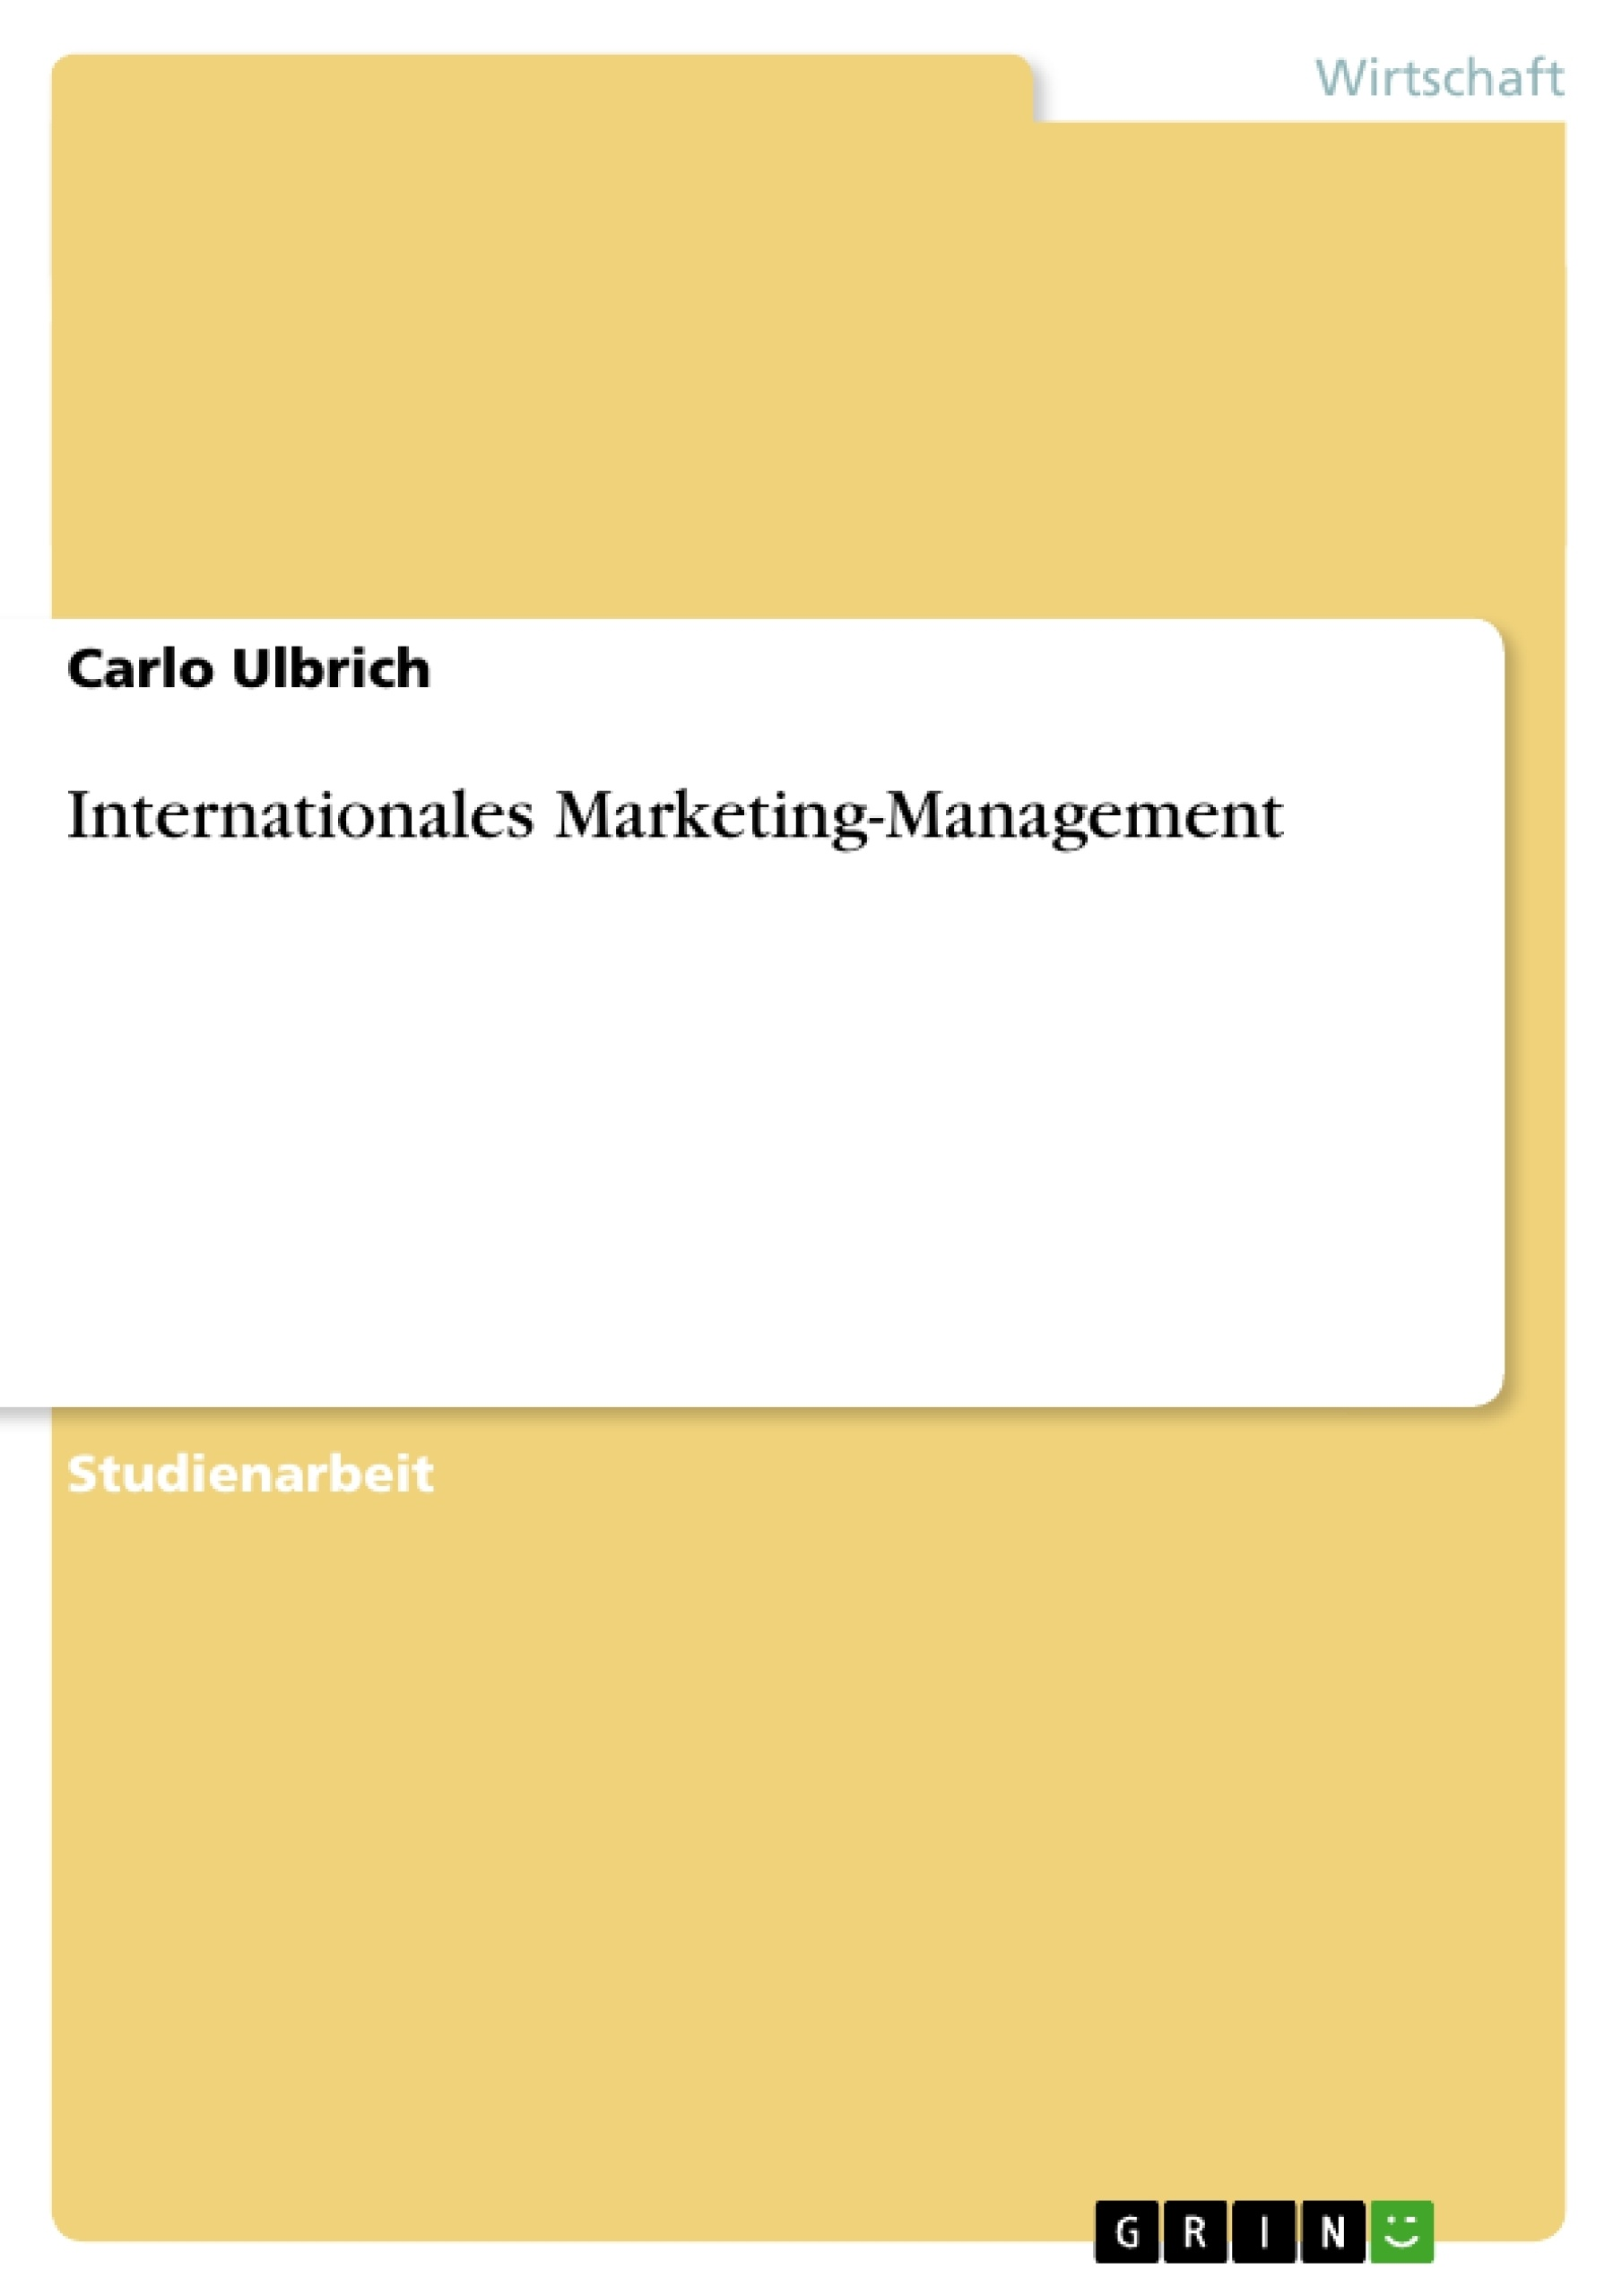 Titel: Internationales Marketing-Management